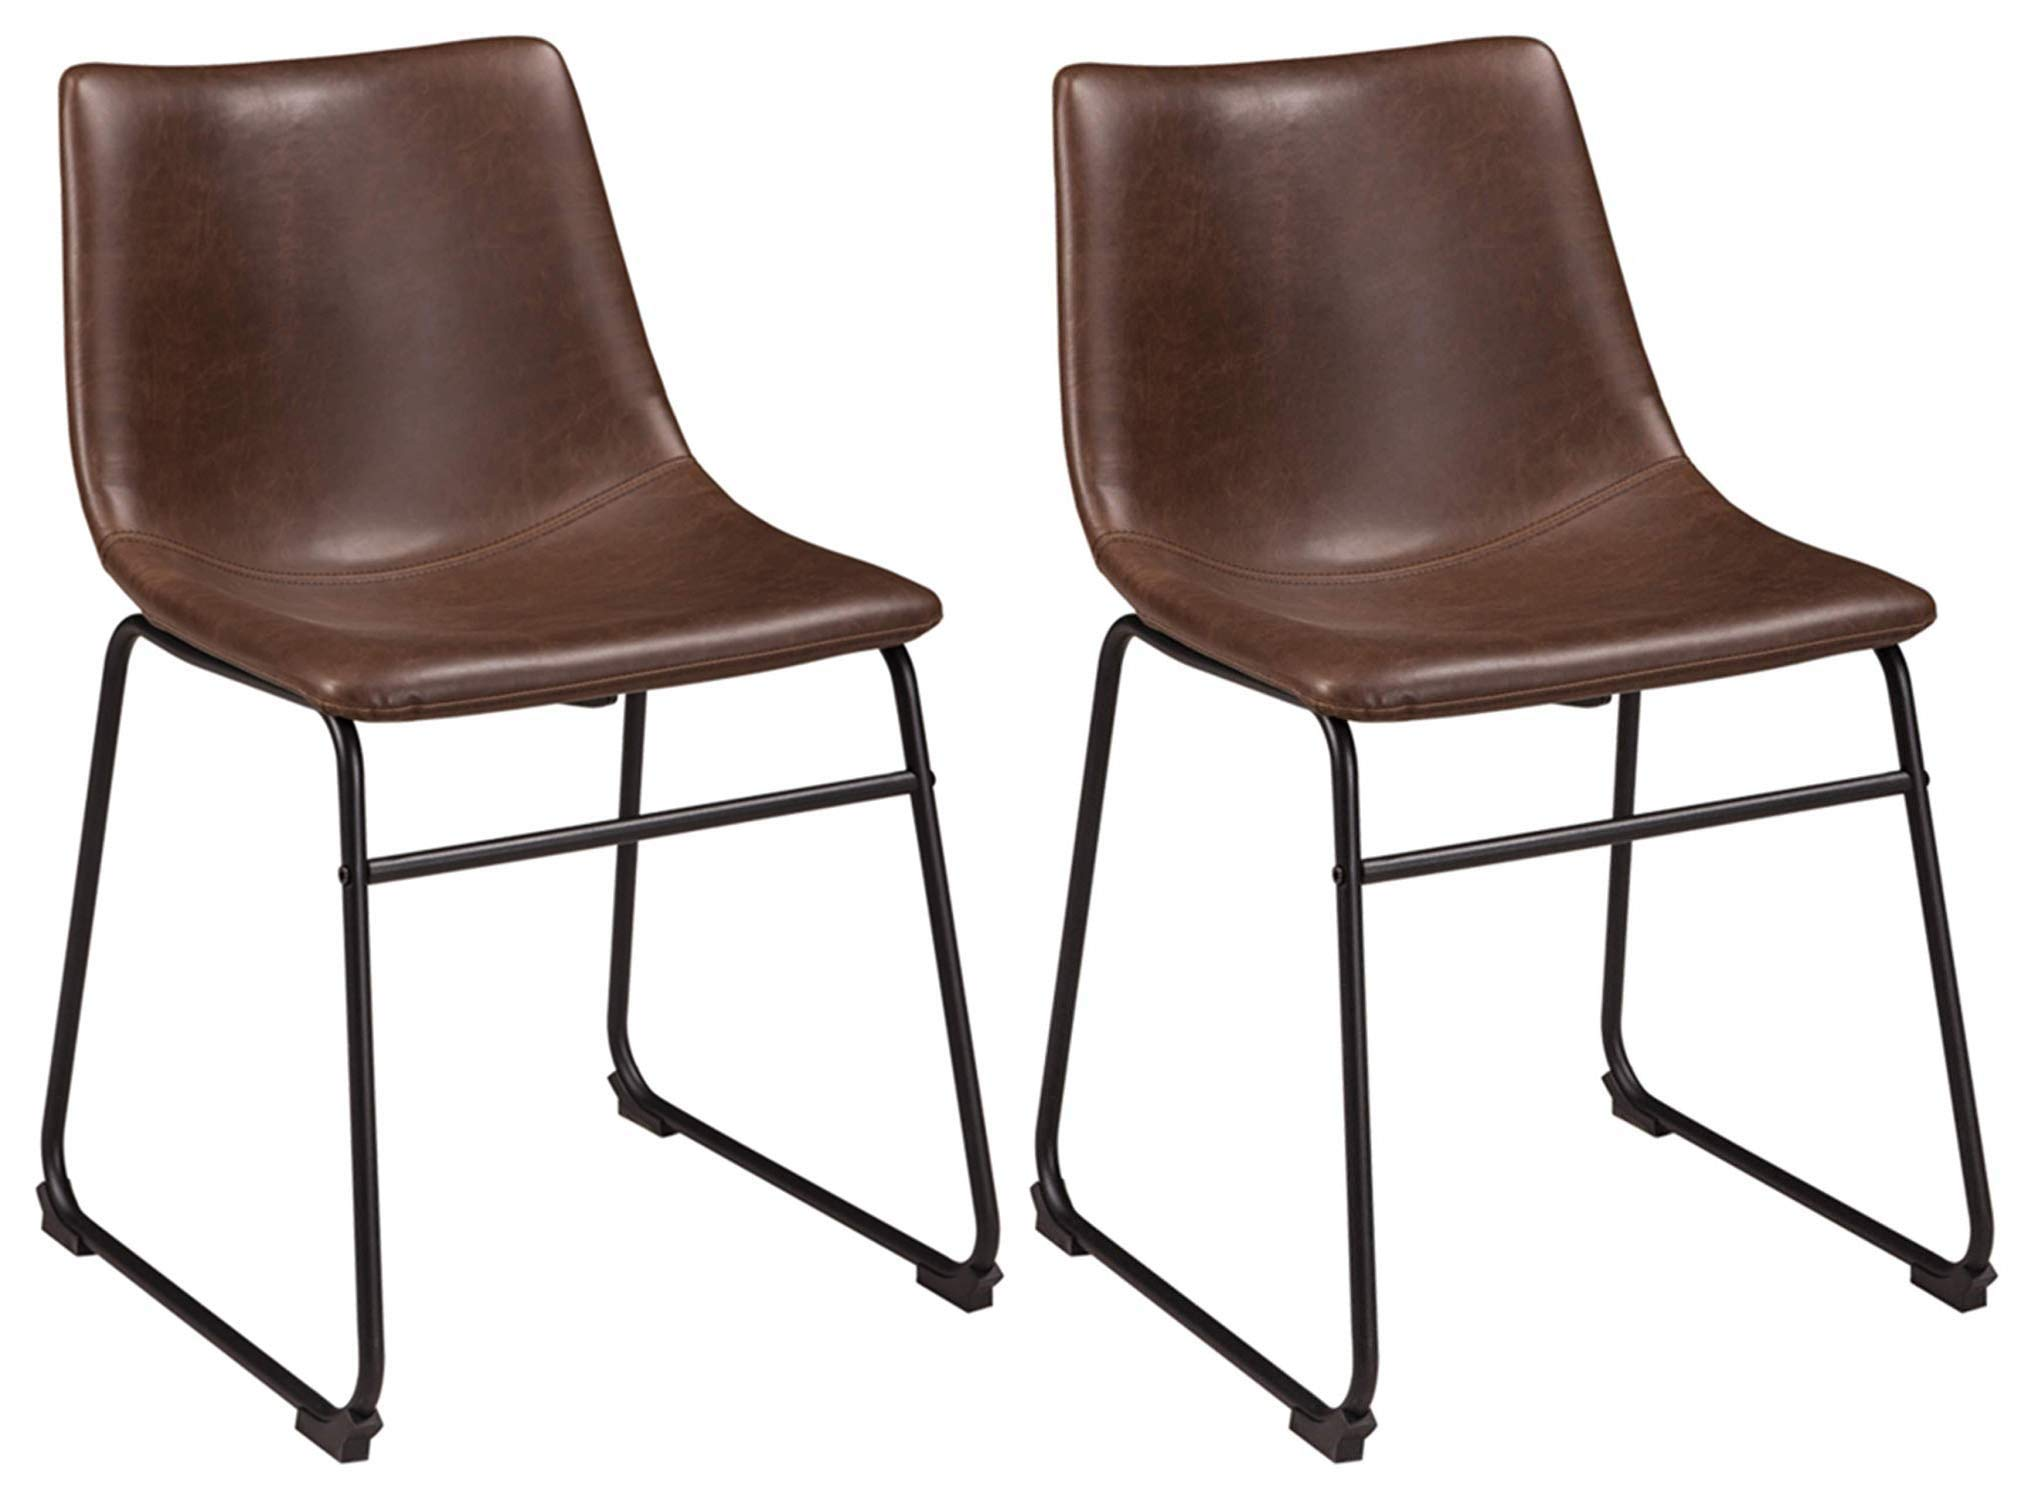 Ashley Furniture Signature Design - Centiar Dining Chairs - Set of 2 - Mid Century Modern Style - Black Metal Base - Brown Faux Leather Bucket Seat by Signature Design by Ashley